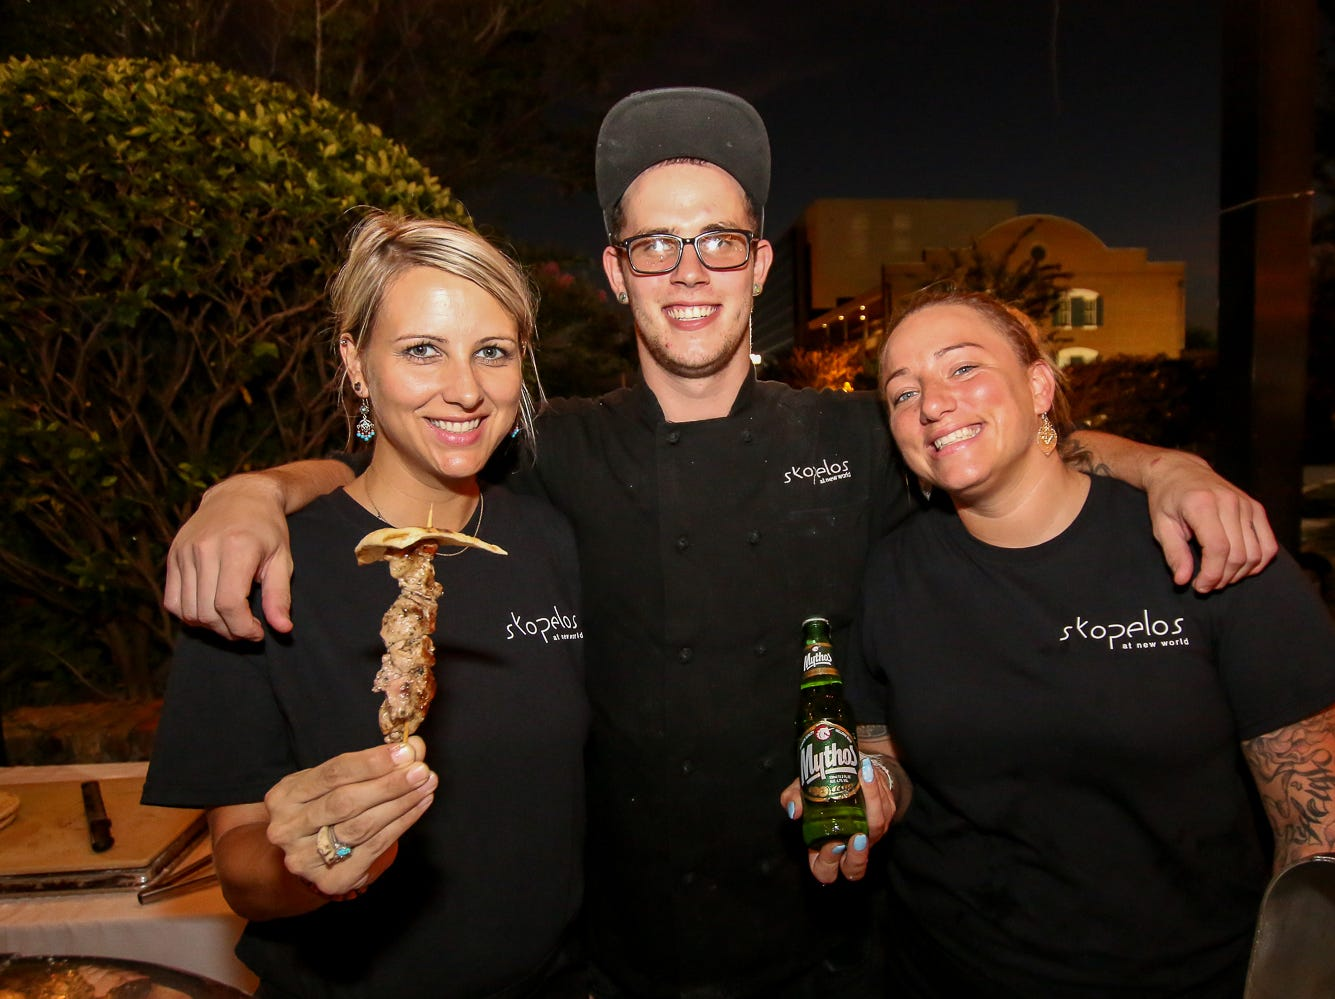 Skopelos at New World offered pork souvlaki and Mythos beer during the Pensacola News Journal's 5th annual Tastemakers restaurant crawl on Saturday, August 25, 2018. The two-night event included about a dozen restaurants that each featured a food and drink item reoresenting a specific country, such as the United States, Mexico, Argentina and more.